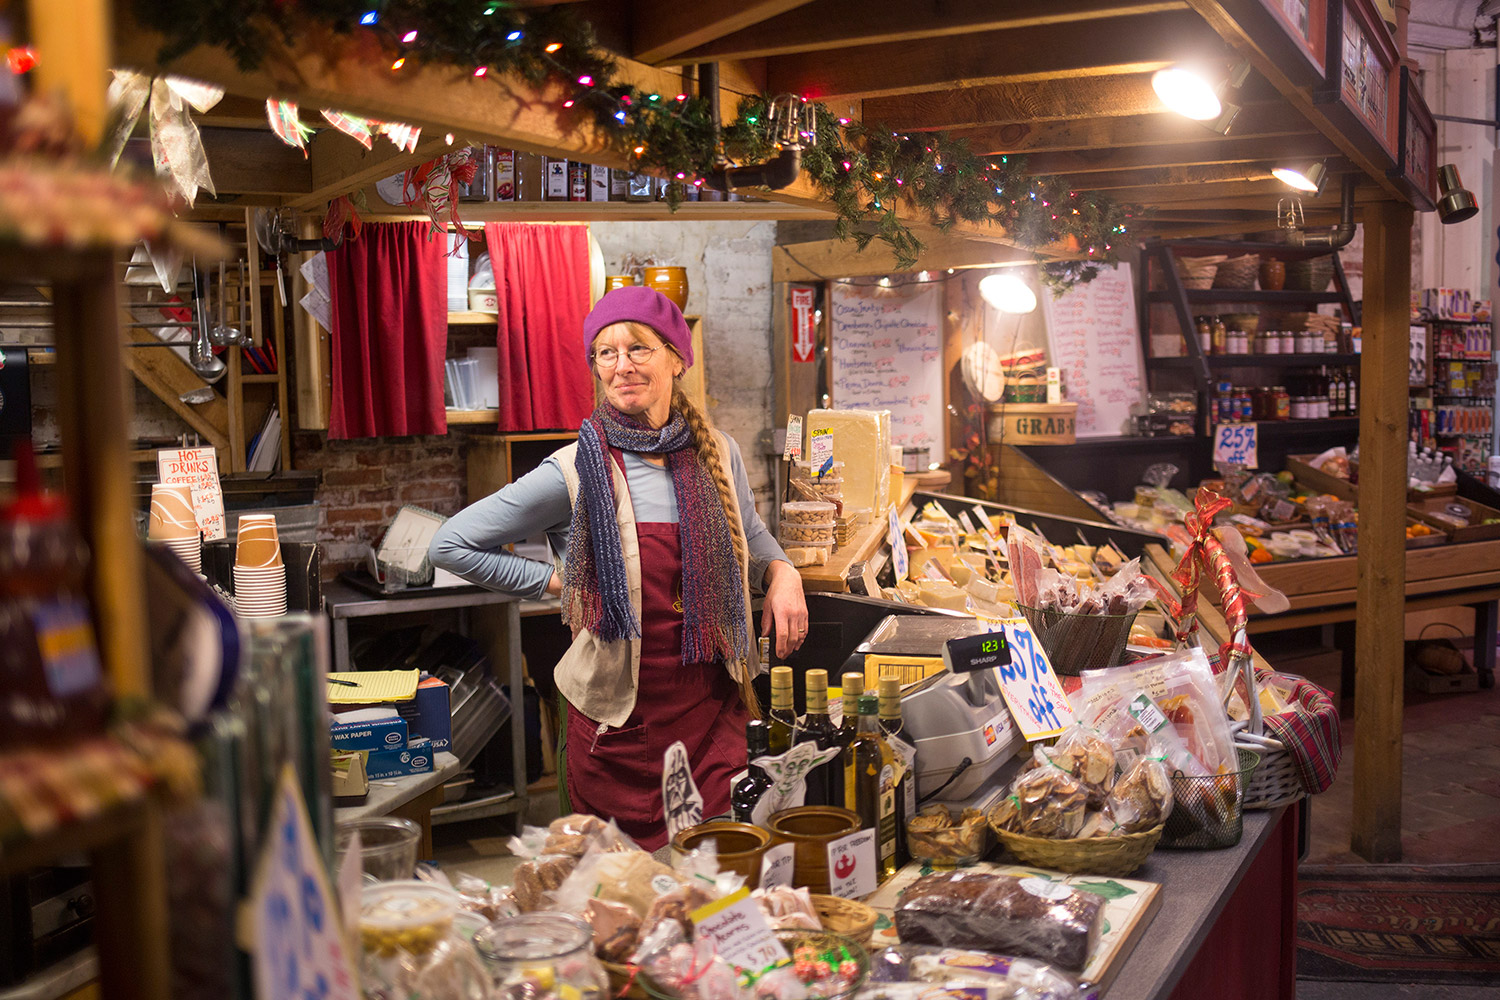 Kris Horton, owner of K. Horton Specialty Foods, works Tuesday evening at her shop in the Public Market House on Monument Square. Horton will close the shop, after 18 years in business.